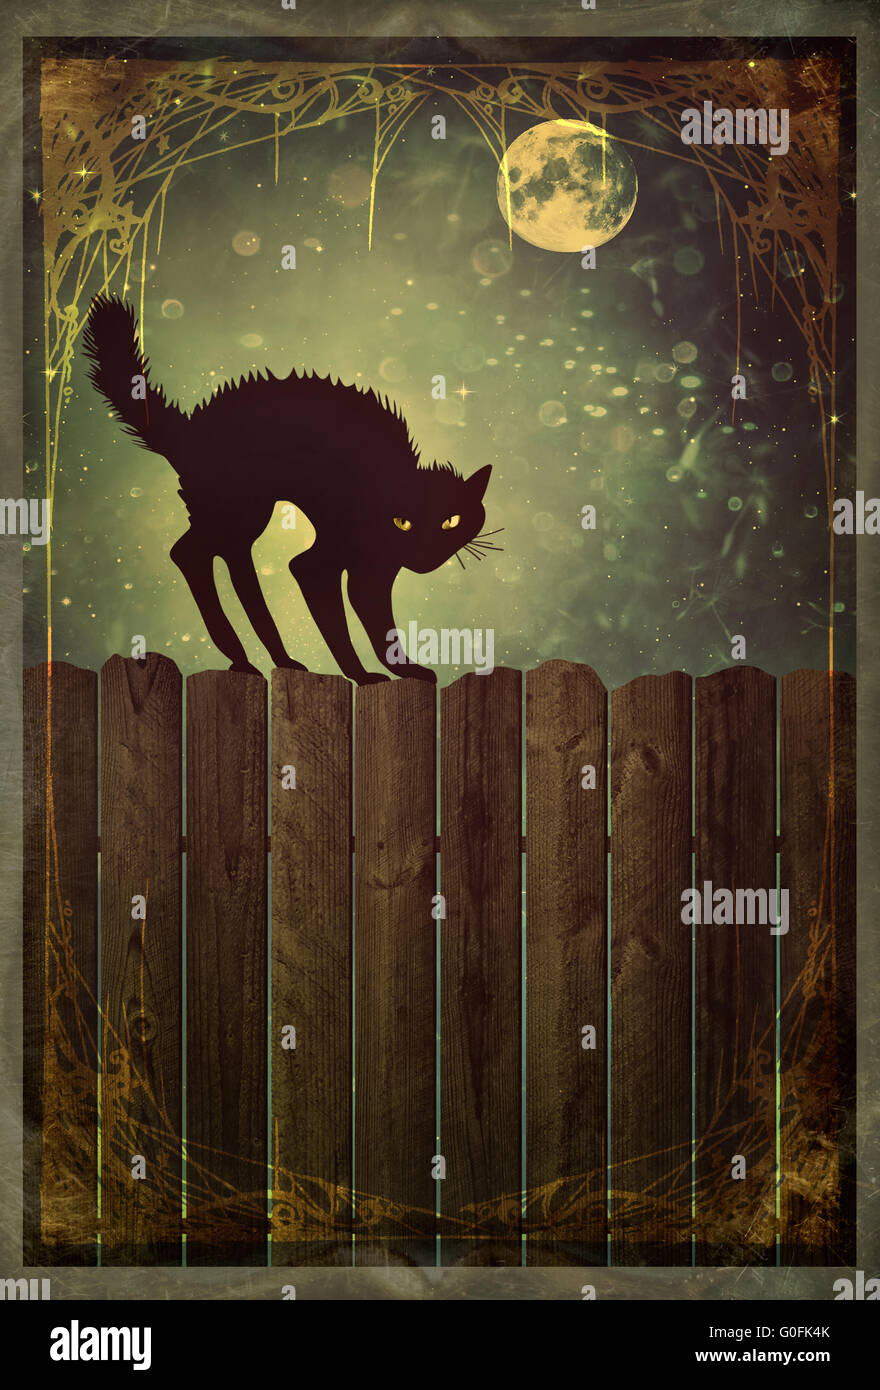 Black cat on old wood fence at  night with vintage - Stock Image